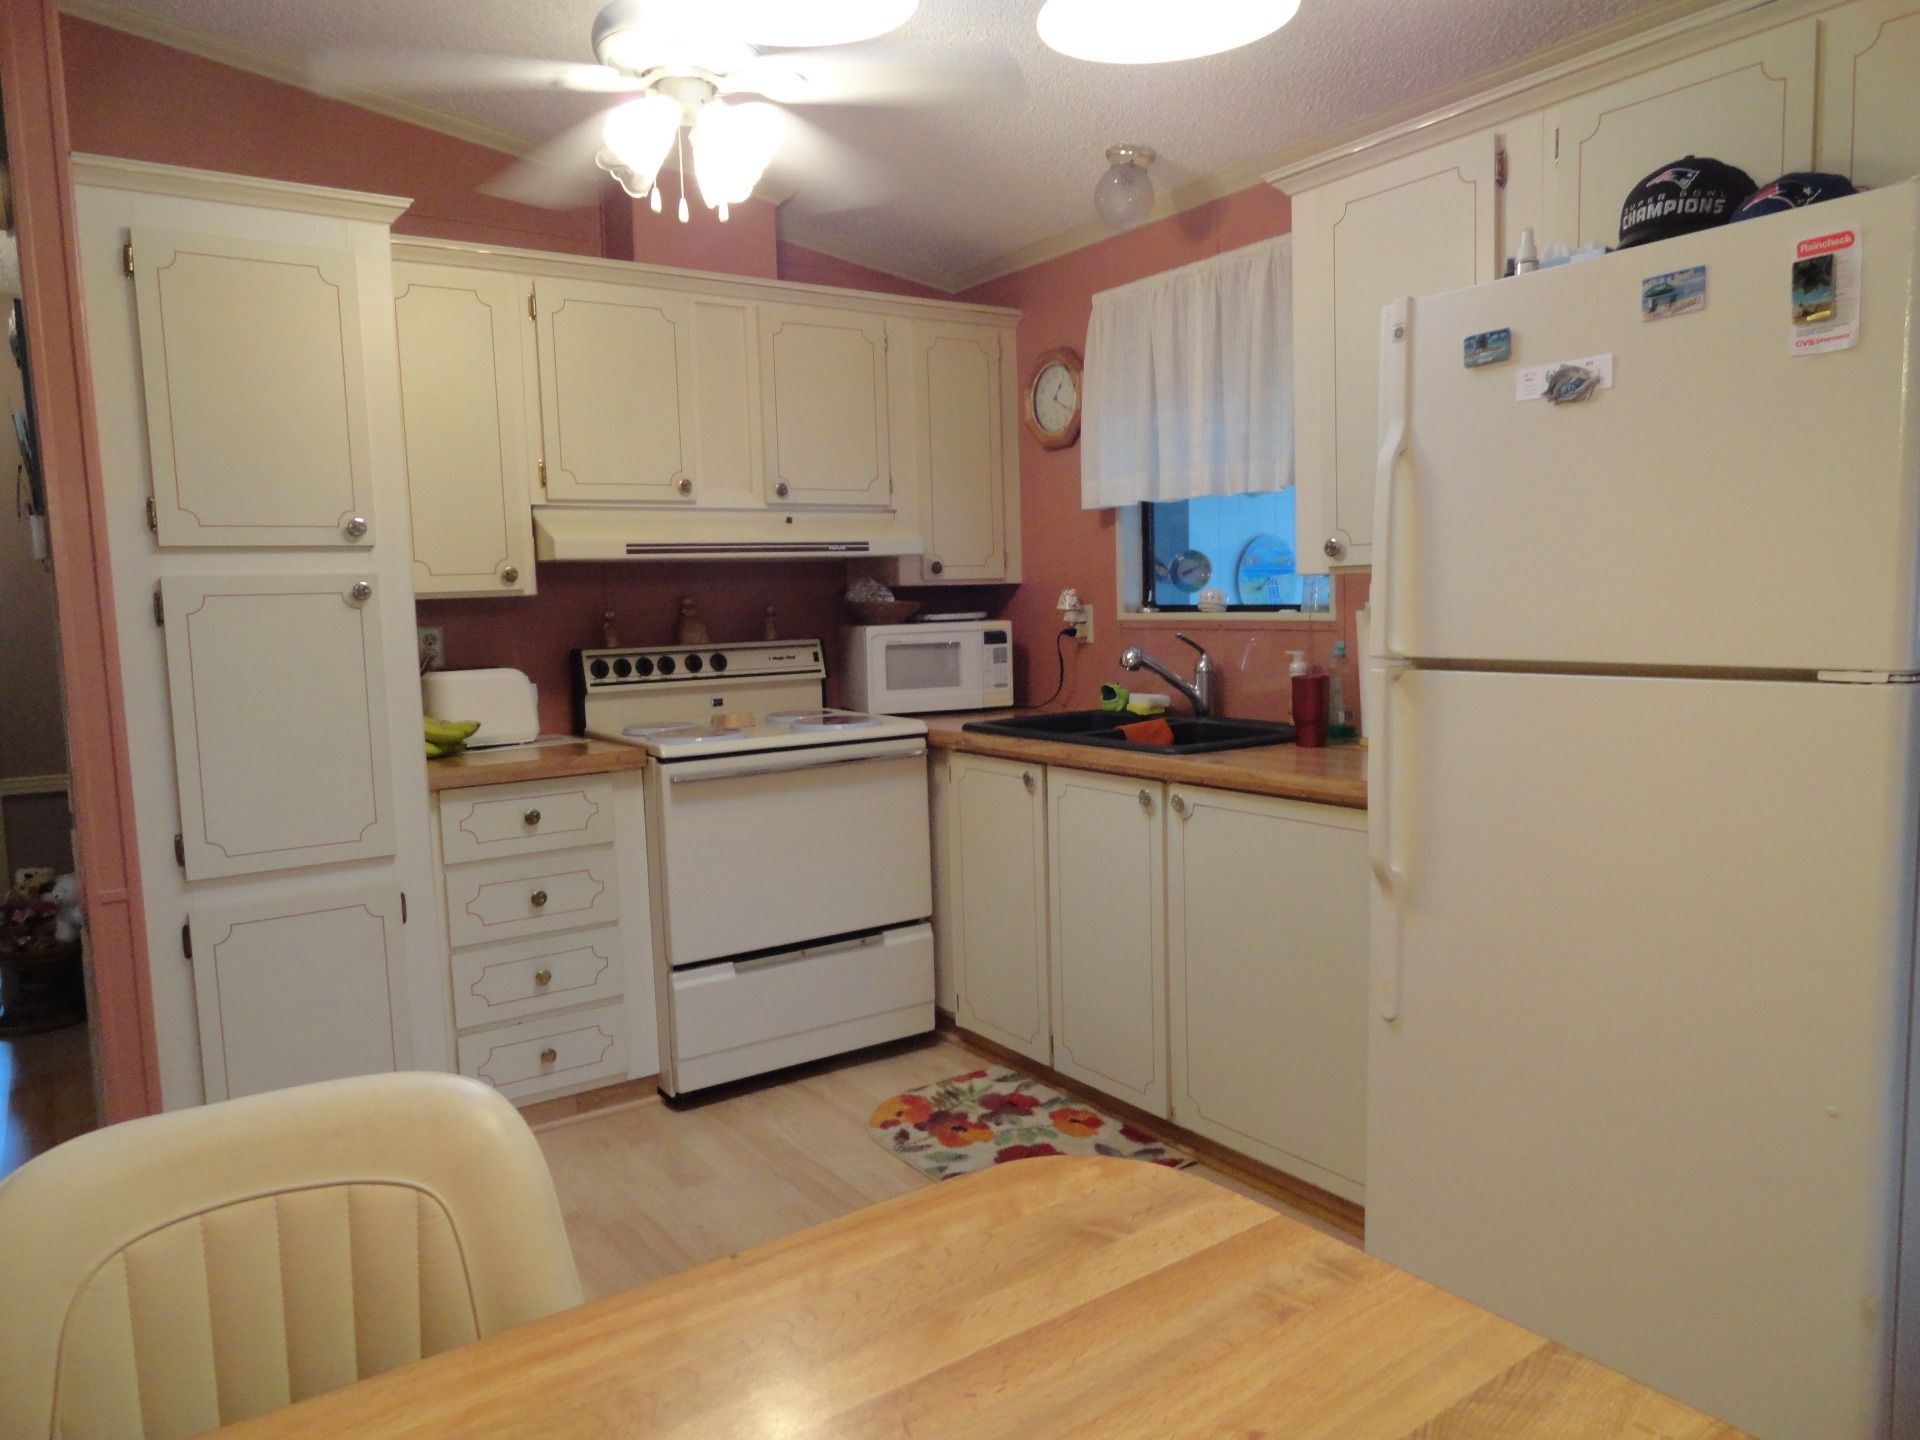 KITCHEN 1989 Palm Harbor Mobile / Manufactured Home in